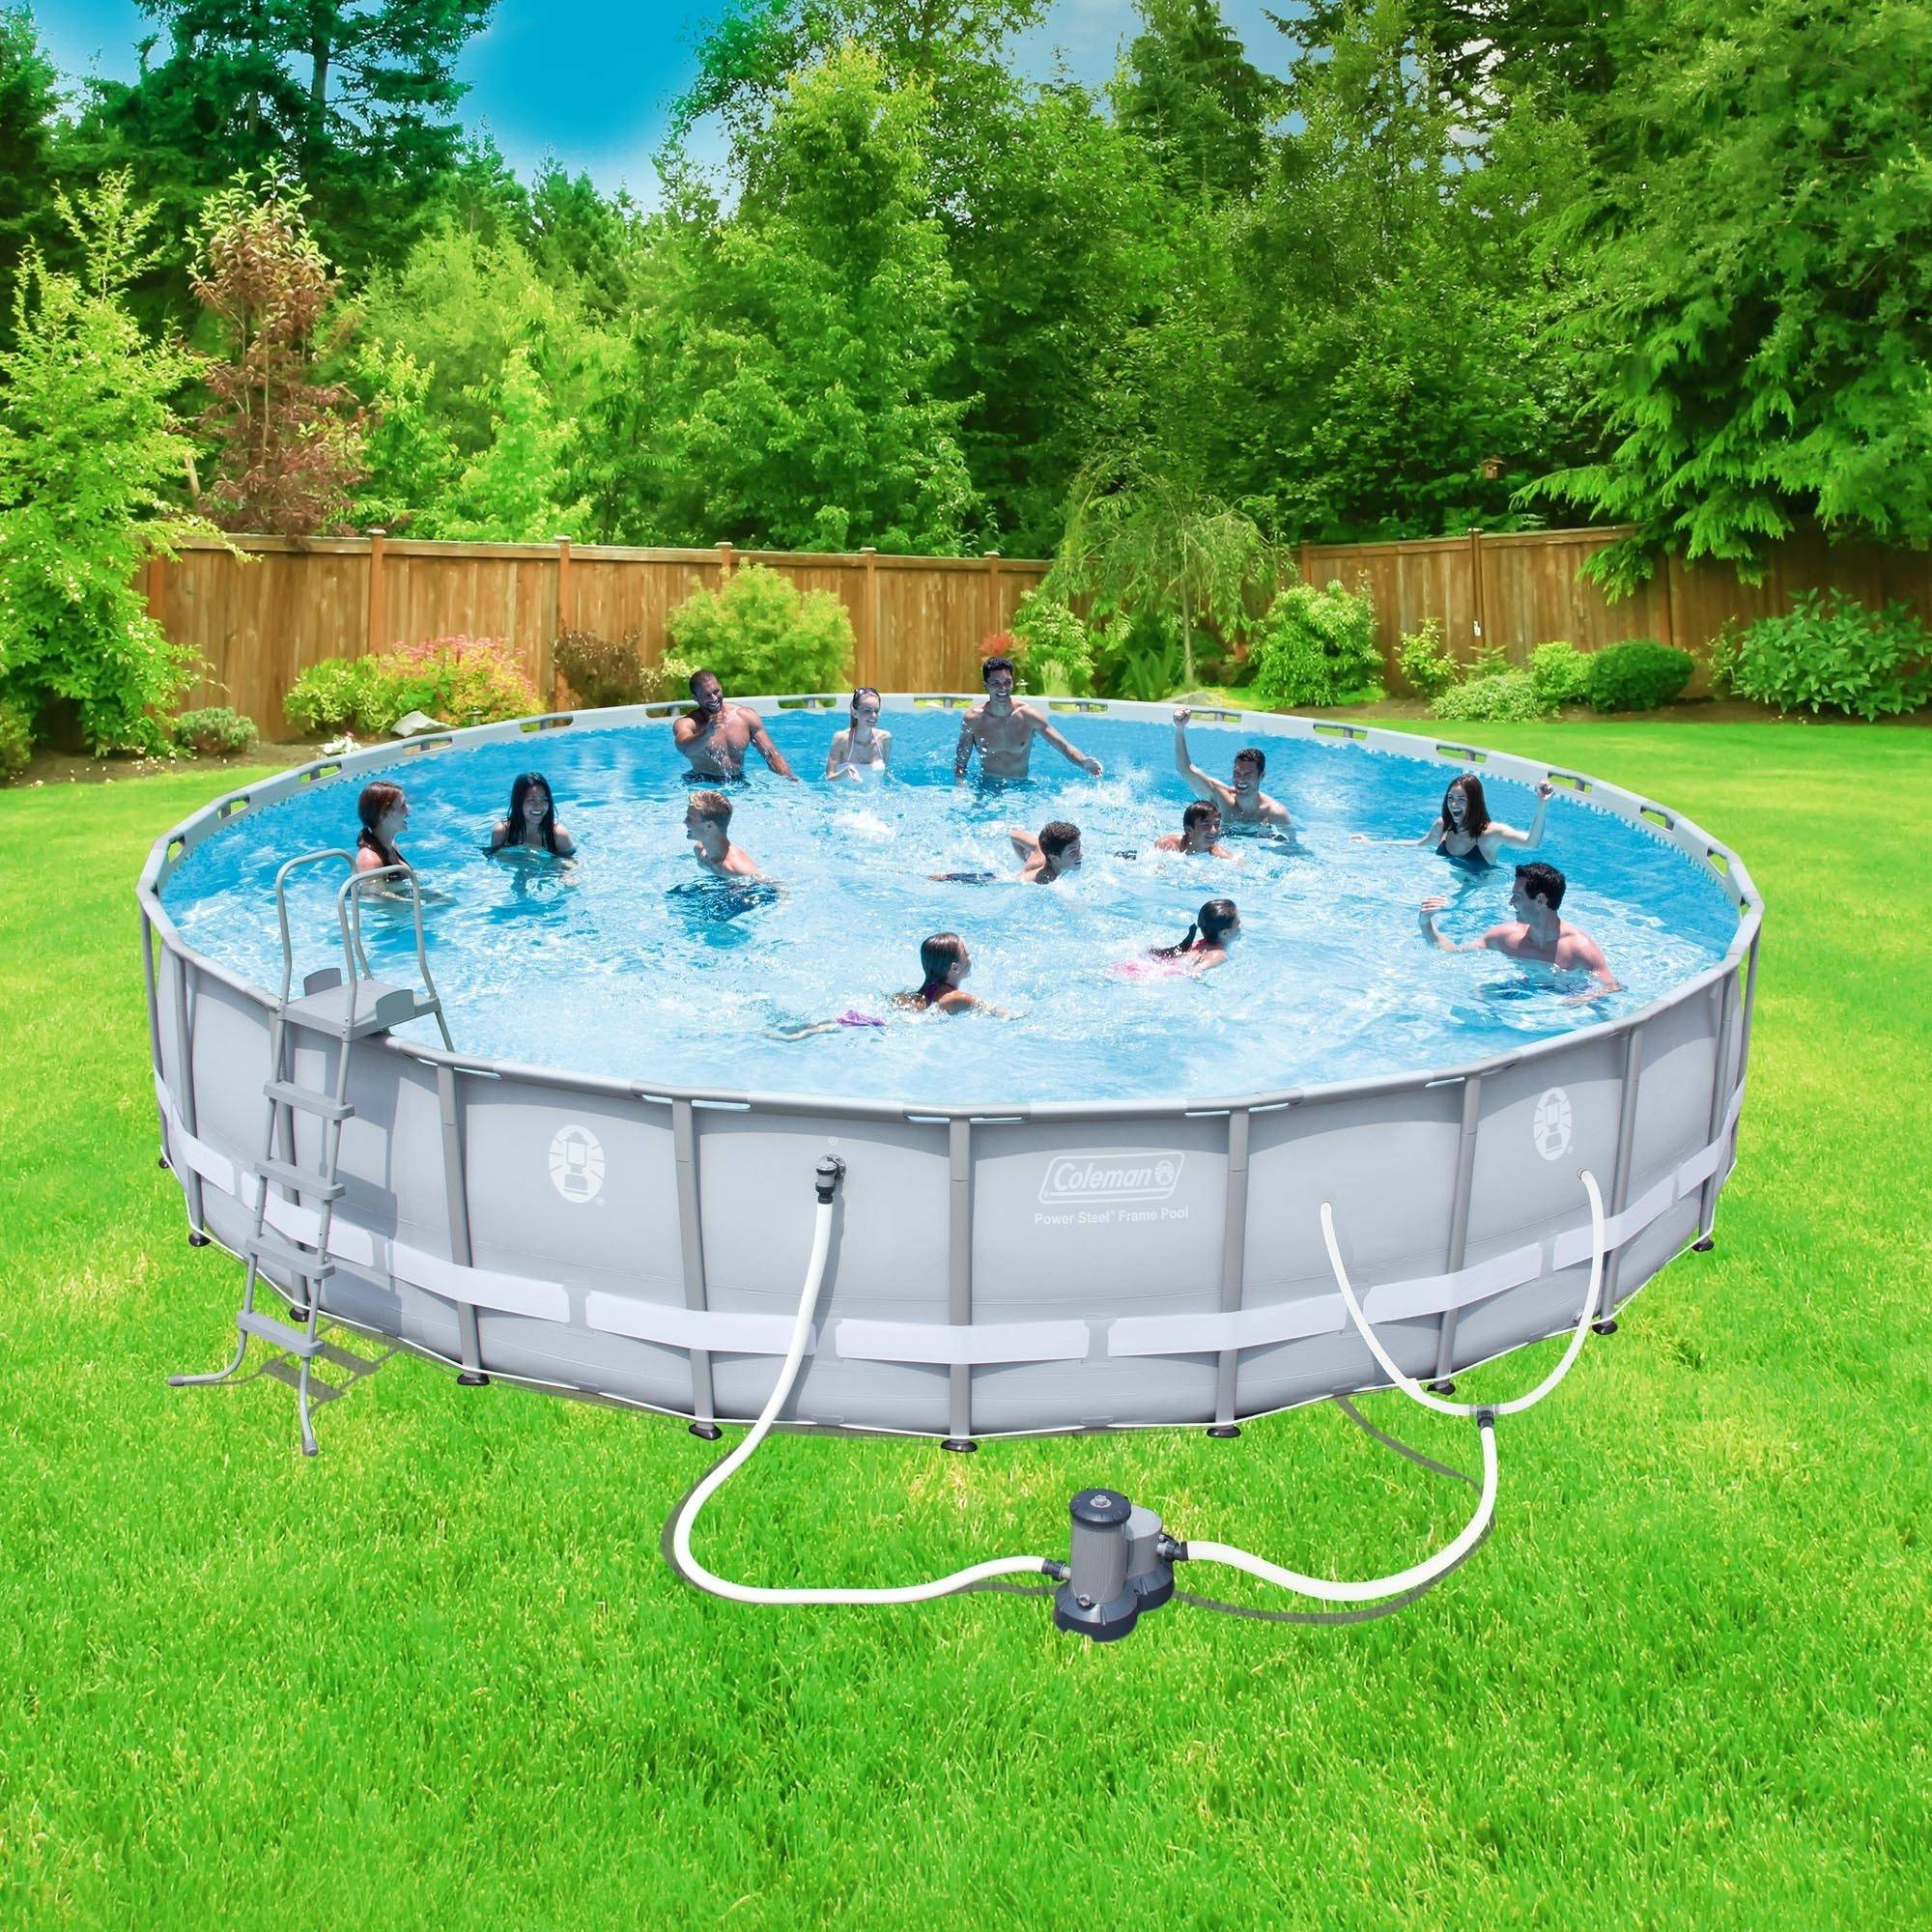 Proseries 14 39 x 42 metal frame swimming pool with deluxe kit - Steel frame pool ...